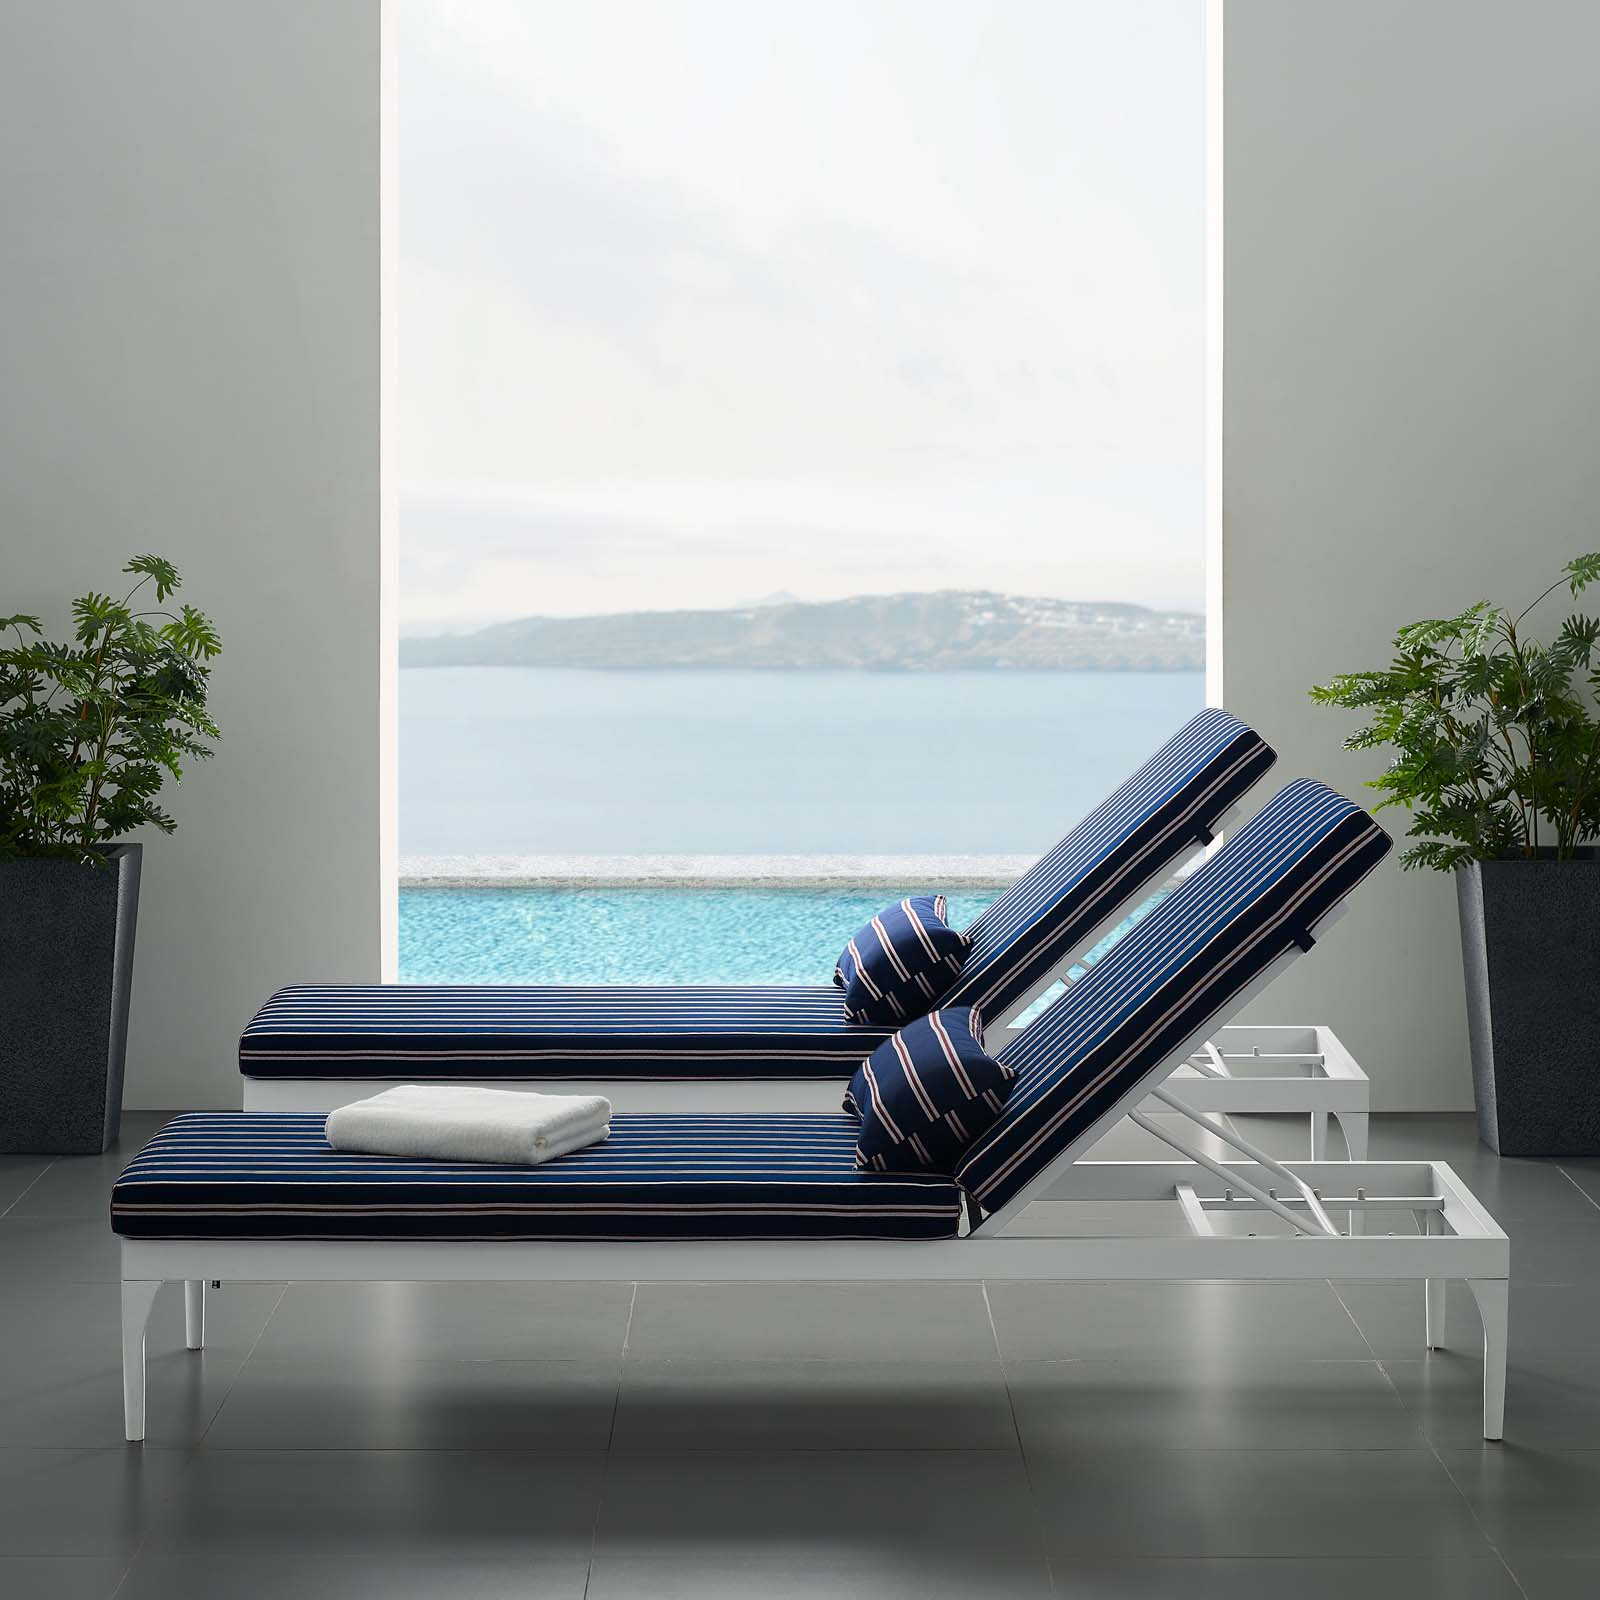 Chaise Lounge Chairs In White With Navy Cushions In 2019 Perspective Cushion Outdoor Patio Chaise Lounge Chair In White Navy (View 23 of 25)